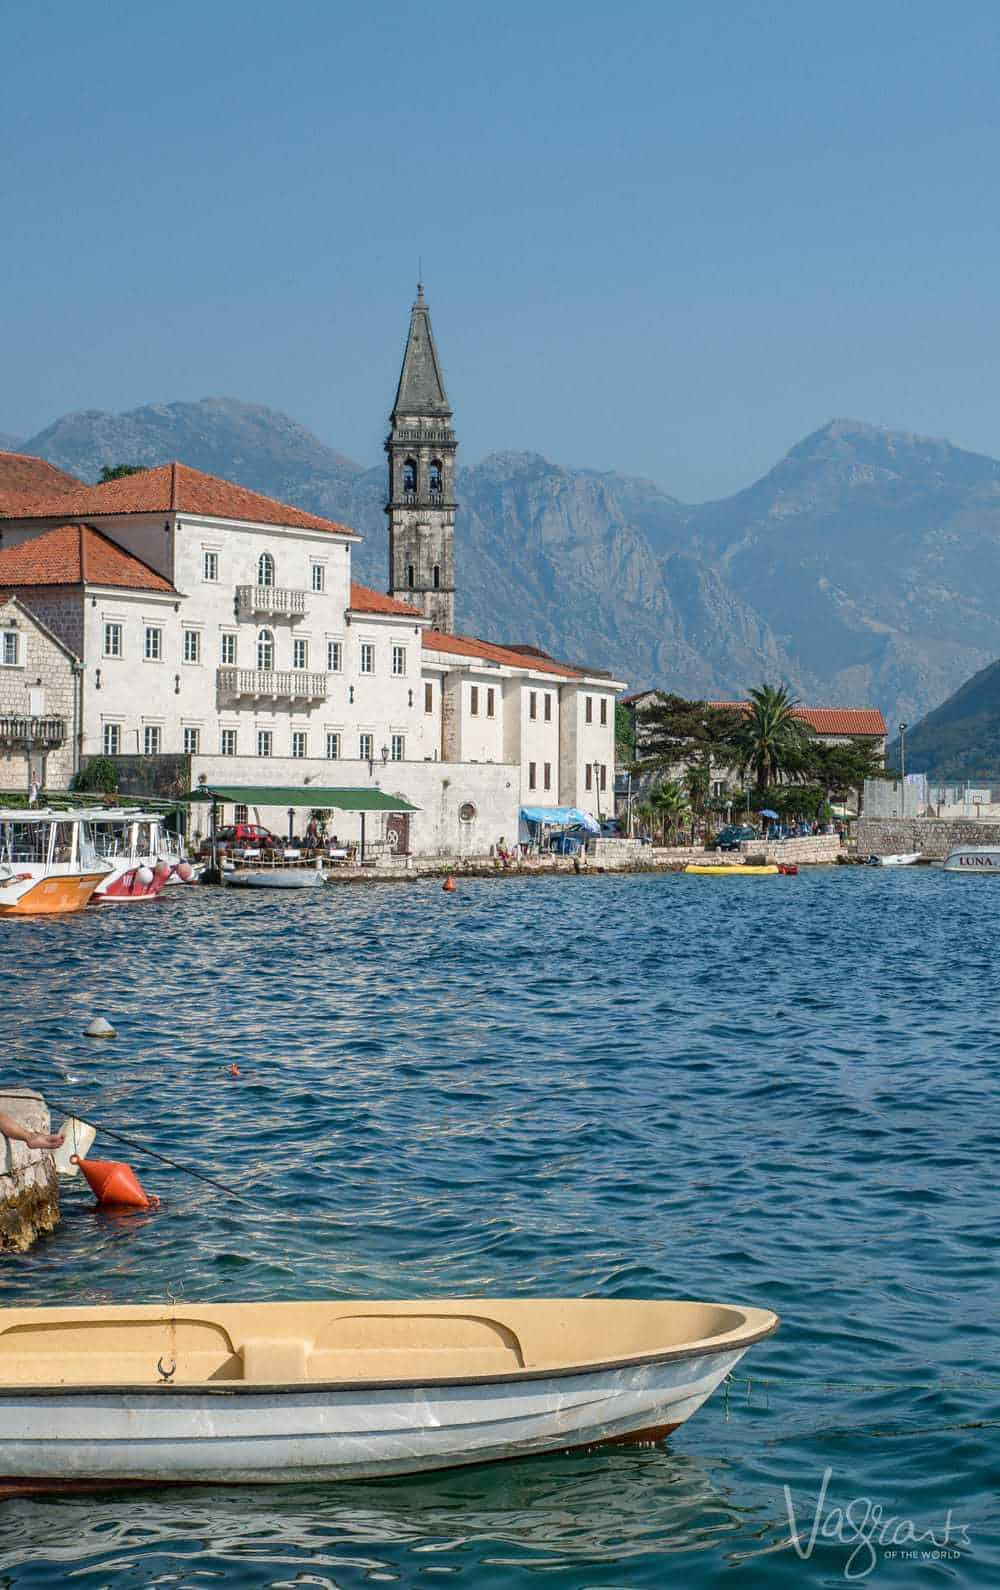 Montenegro - The town of Perast. It doesn't get prettier than this.